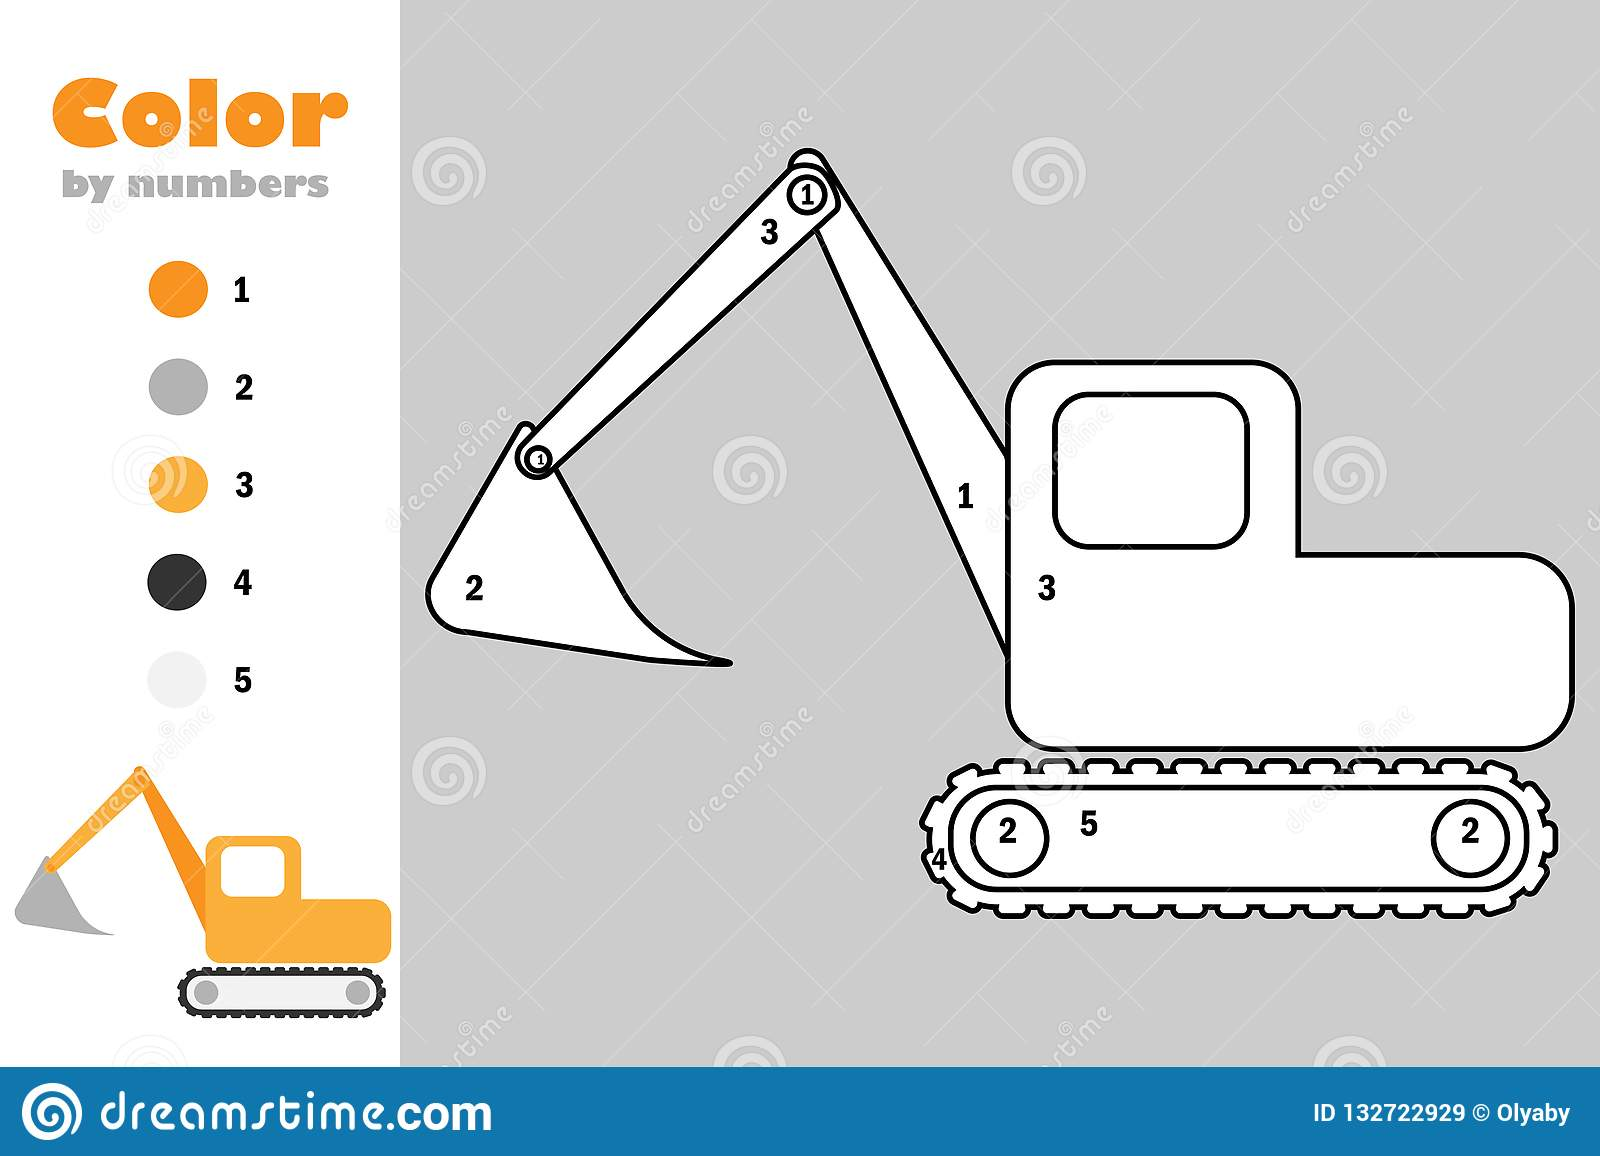 Excavator in cartoon style, color by number, education paper game for the development of children, coloring page, kids preschool